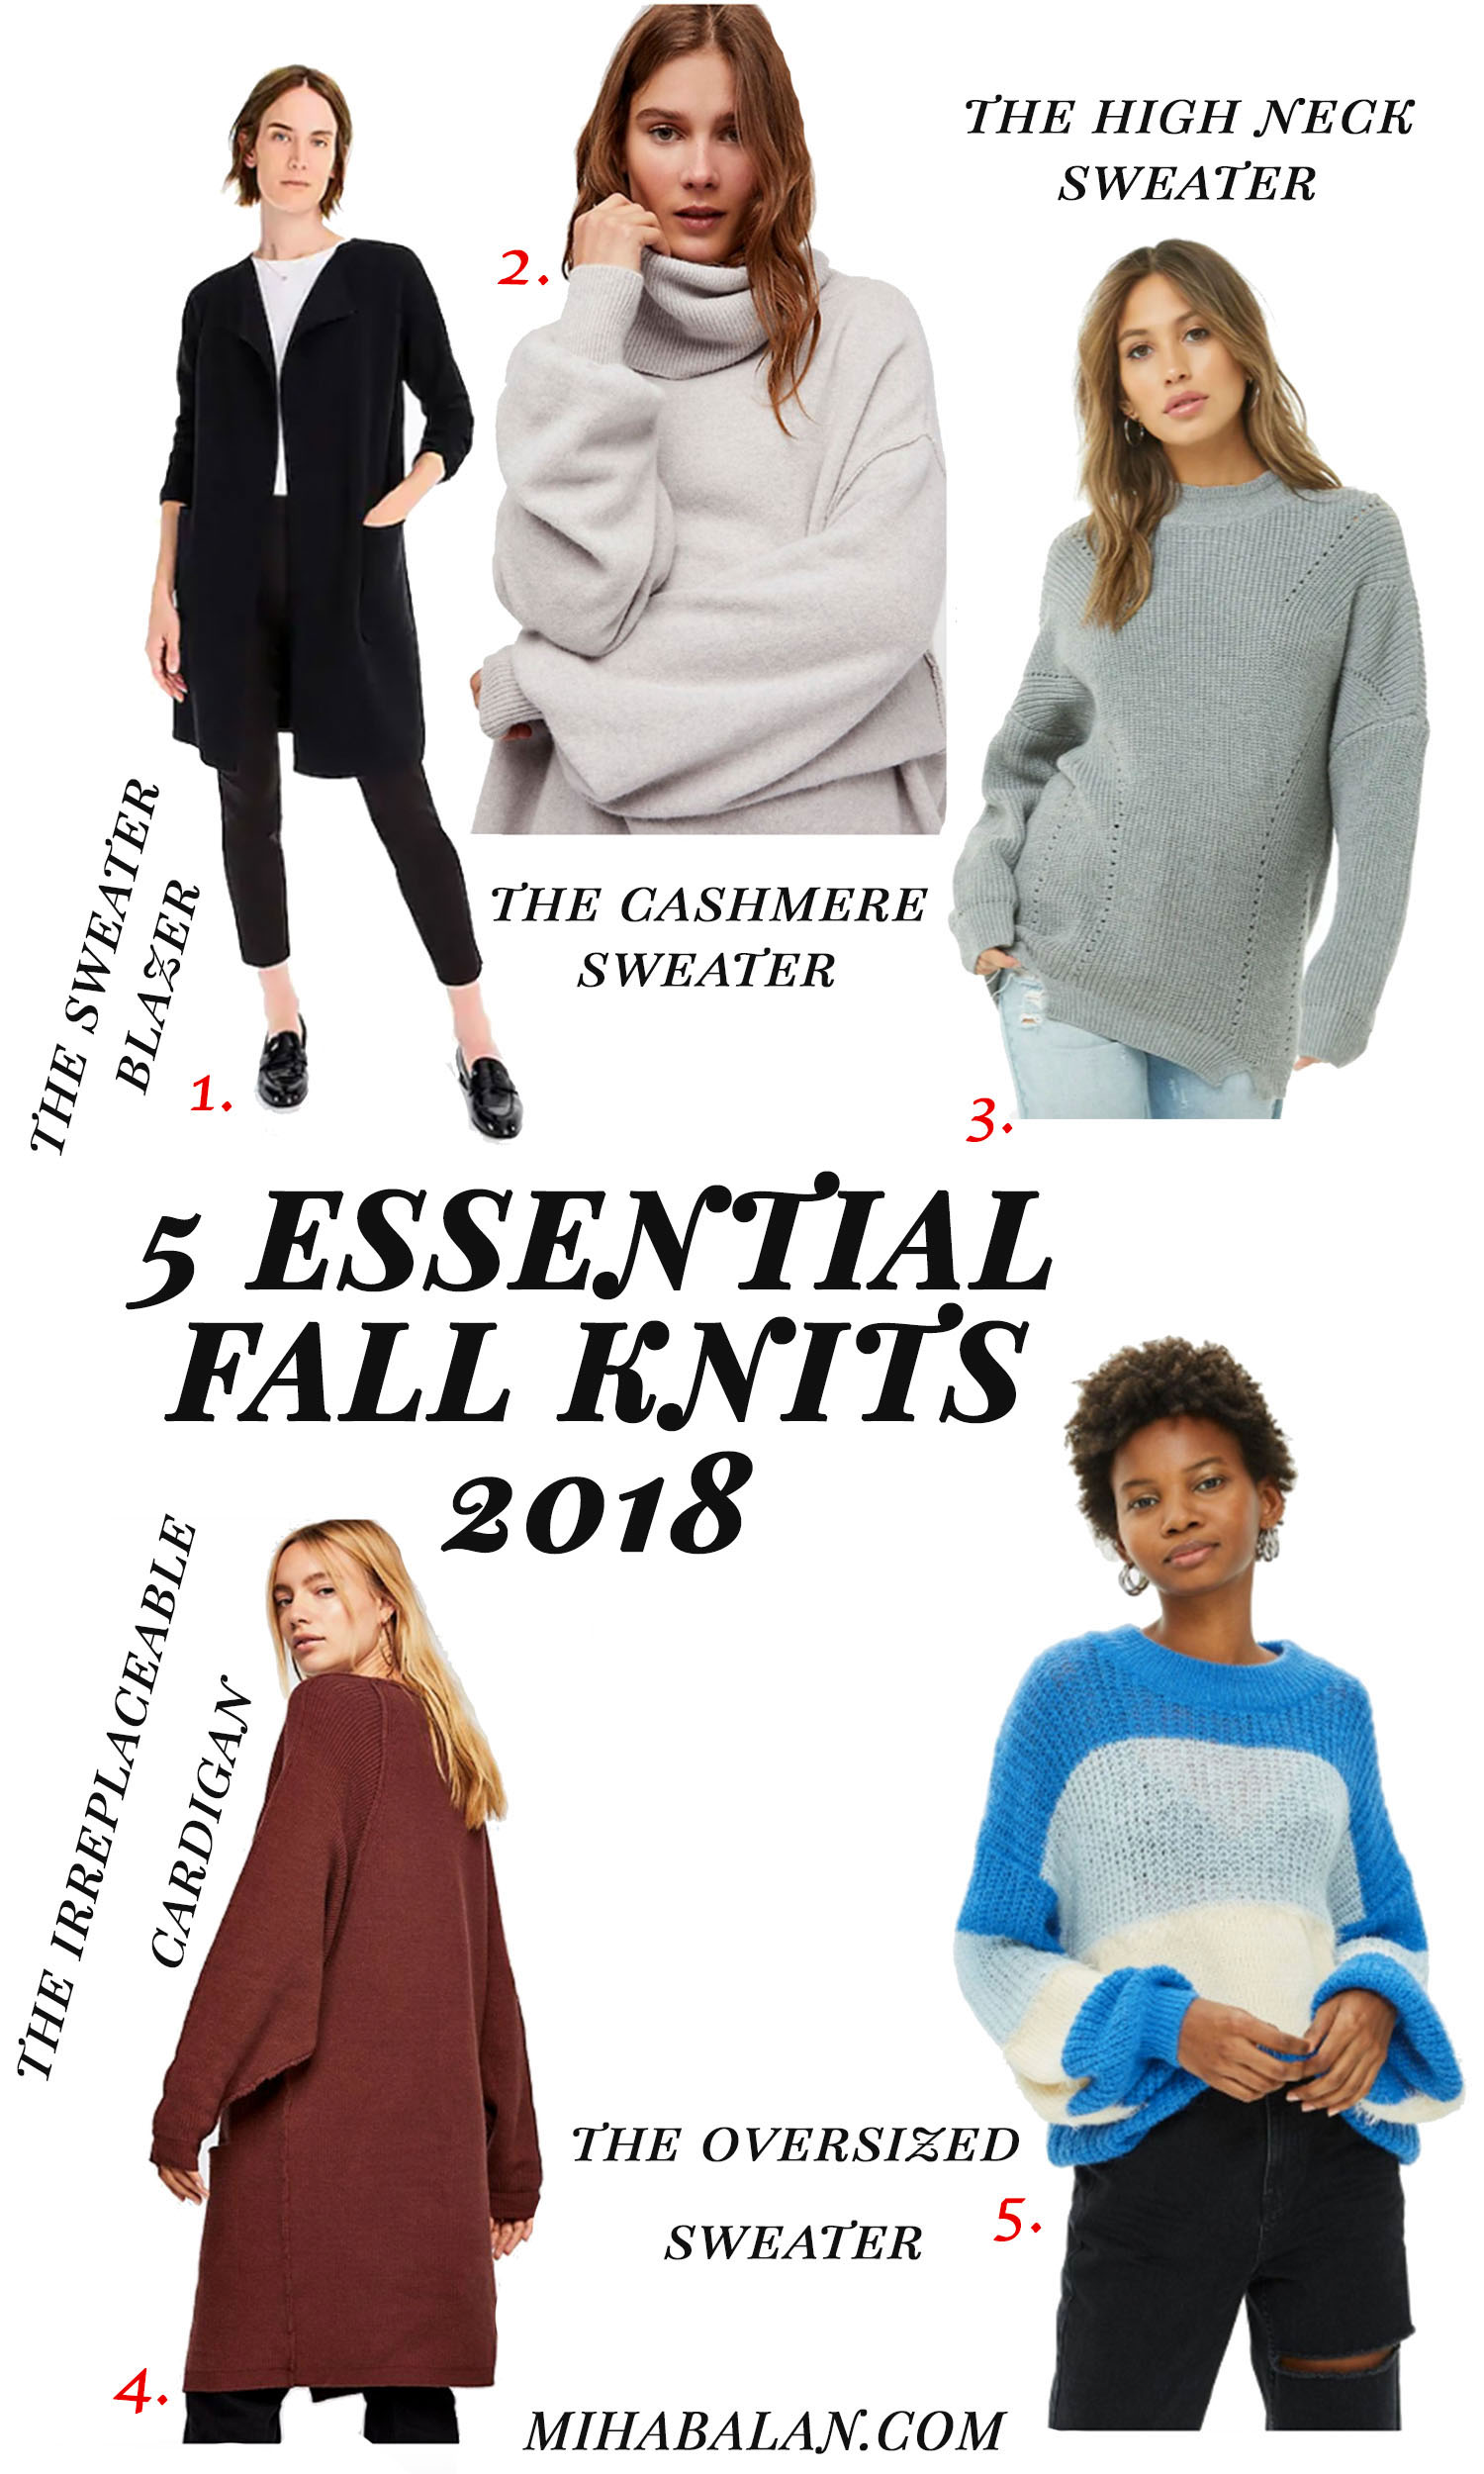 5 Essential fall knits you must have 2018,knitwear, sweaters, fall fashion, fall essentials